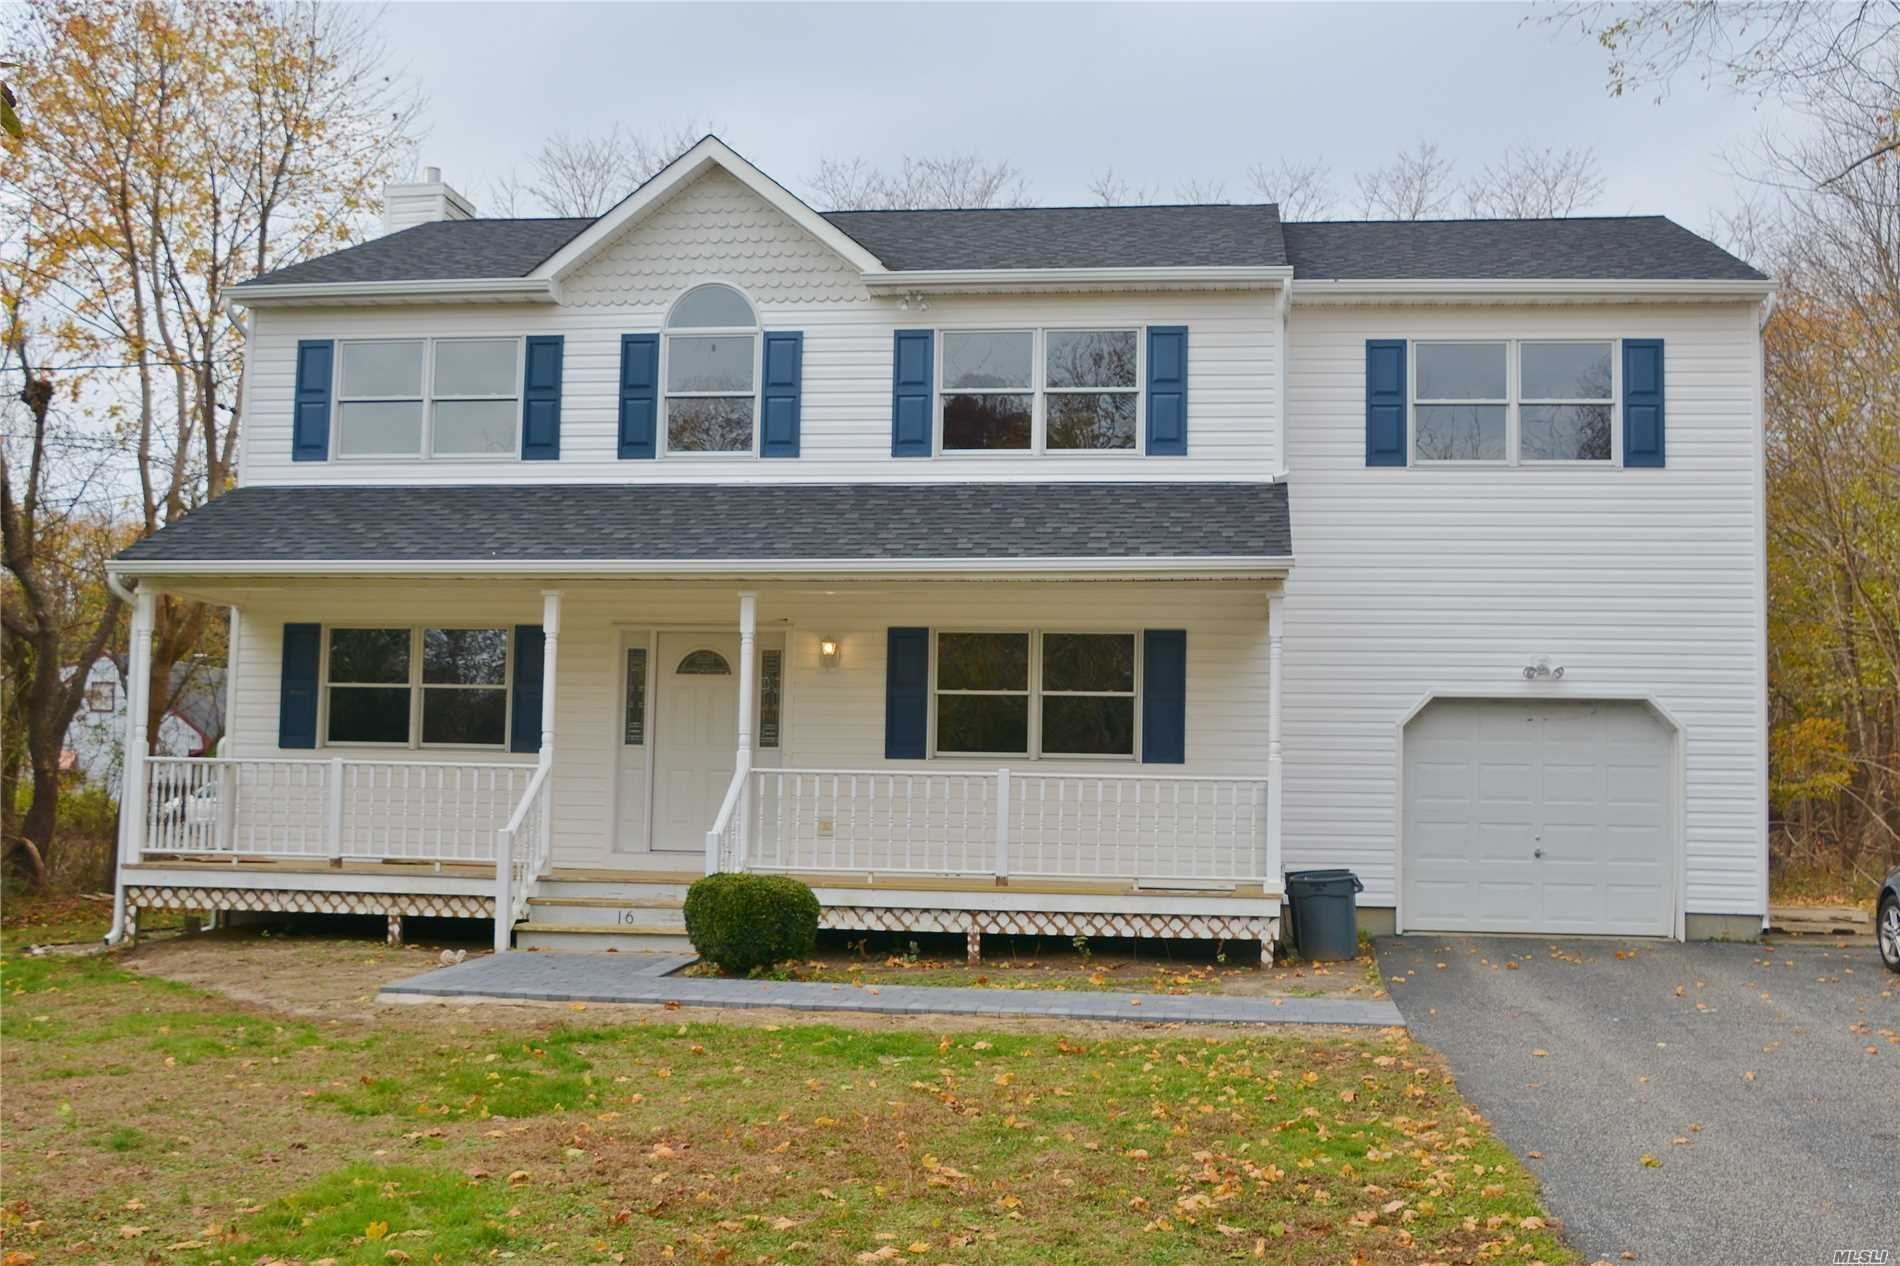 Completely Remodeled Home! New Everything From Roof, Kitchen, Appliances, Hardwood Floors, Doors, Carpets, And Bathrooms. 2, 574 Square Feet Just Completed!